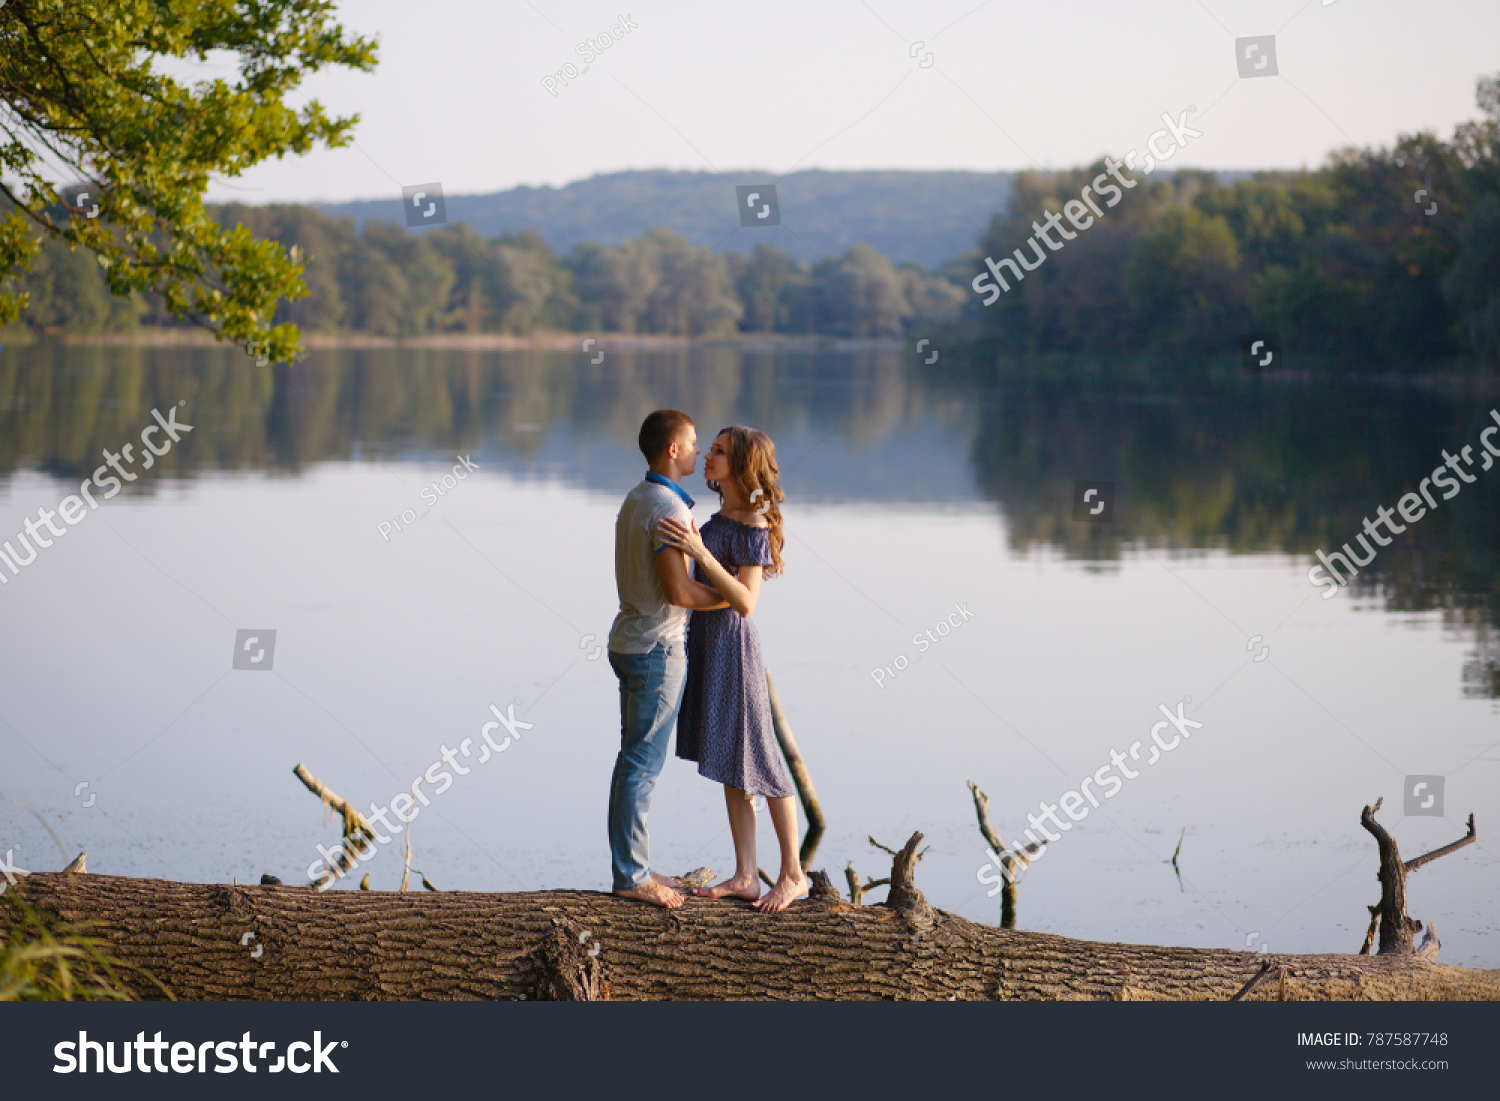 Romantic beautiful couple in love standing alone on a tree that lies in a lake with